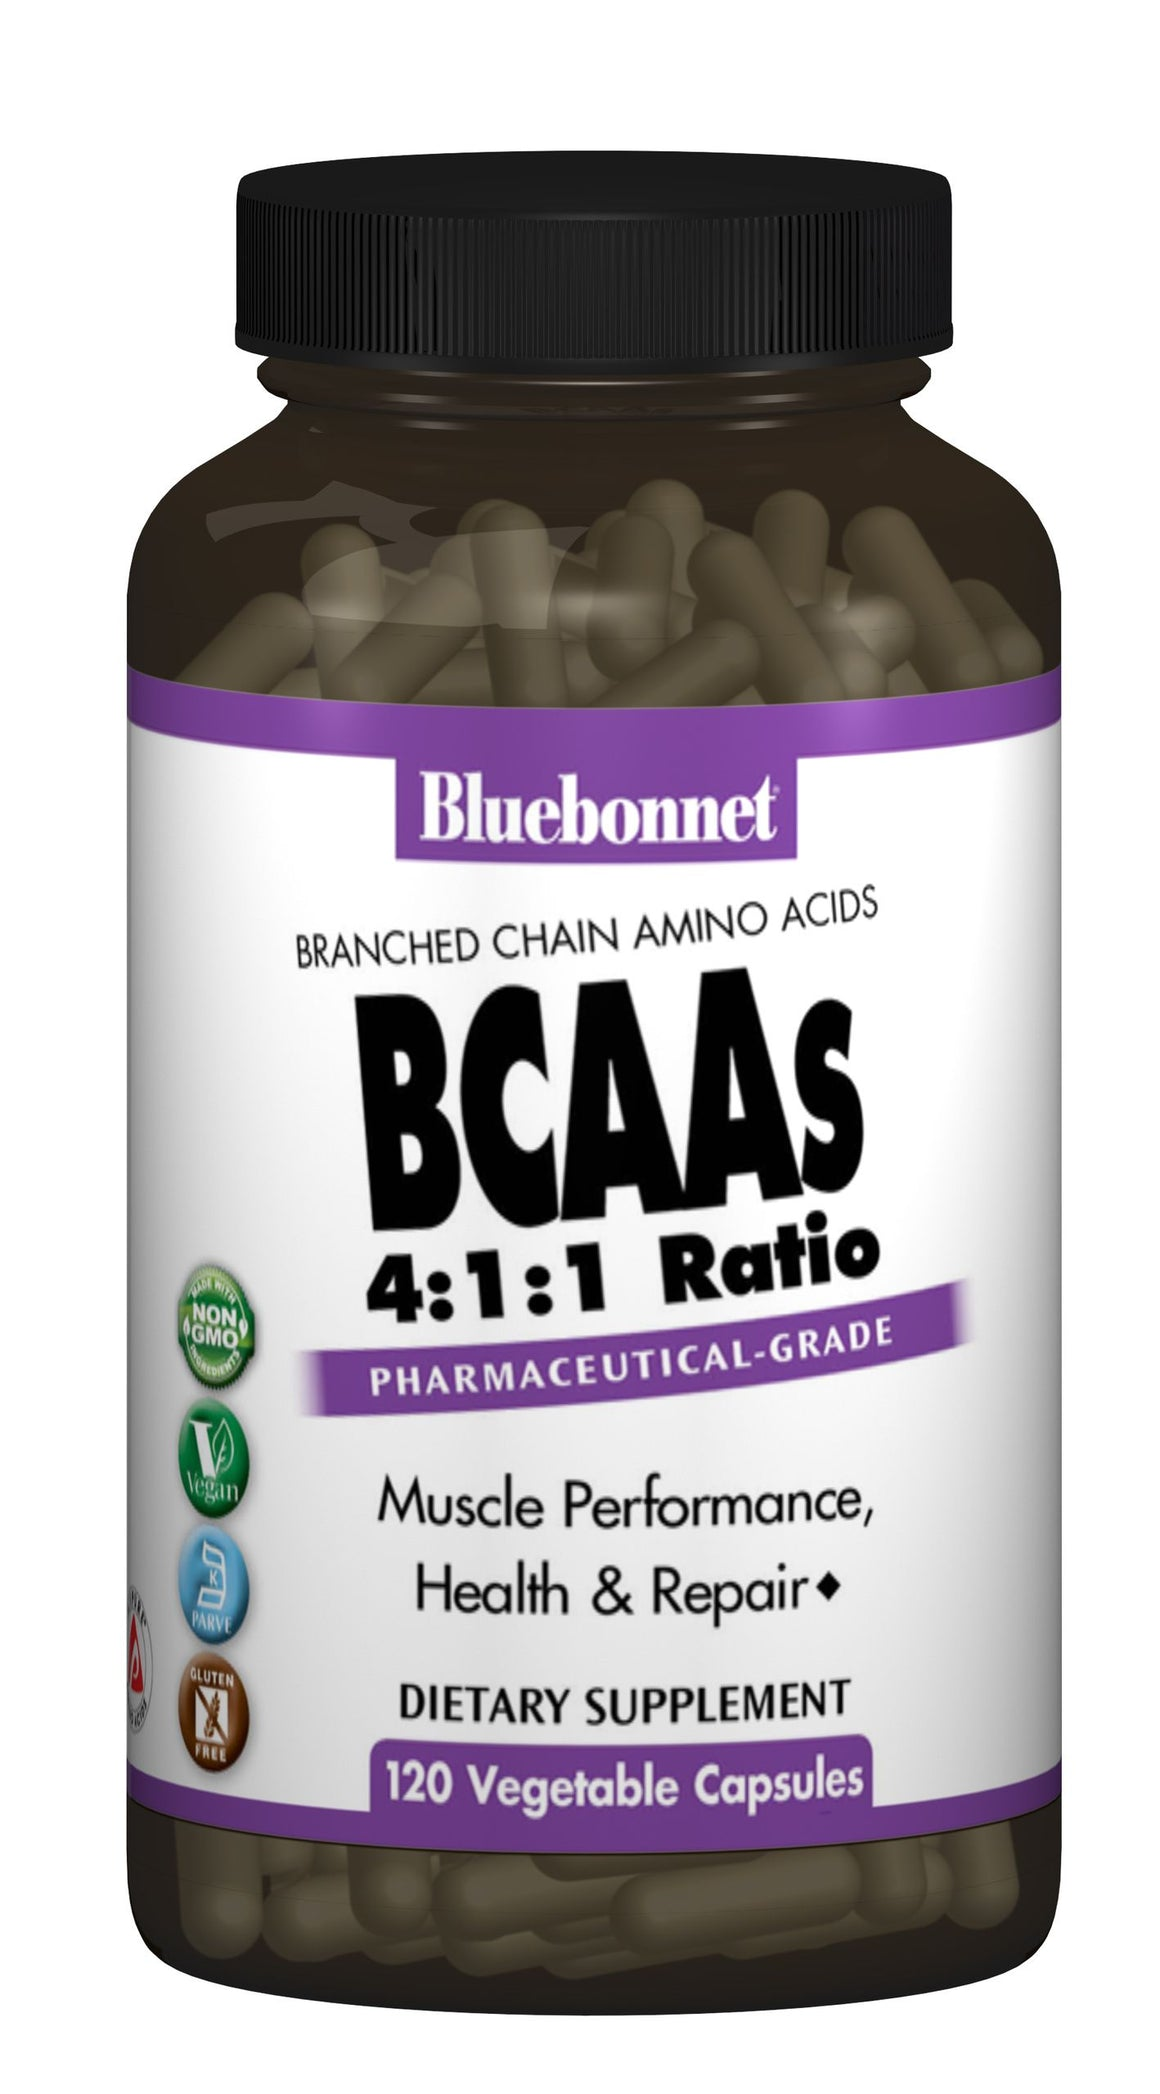 A bottle of Bluebonnet BCAAs